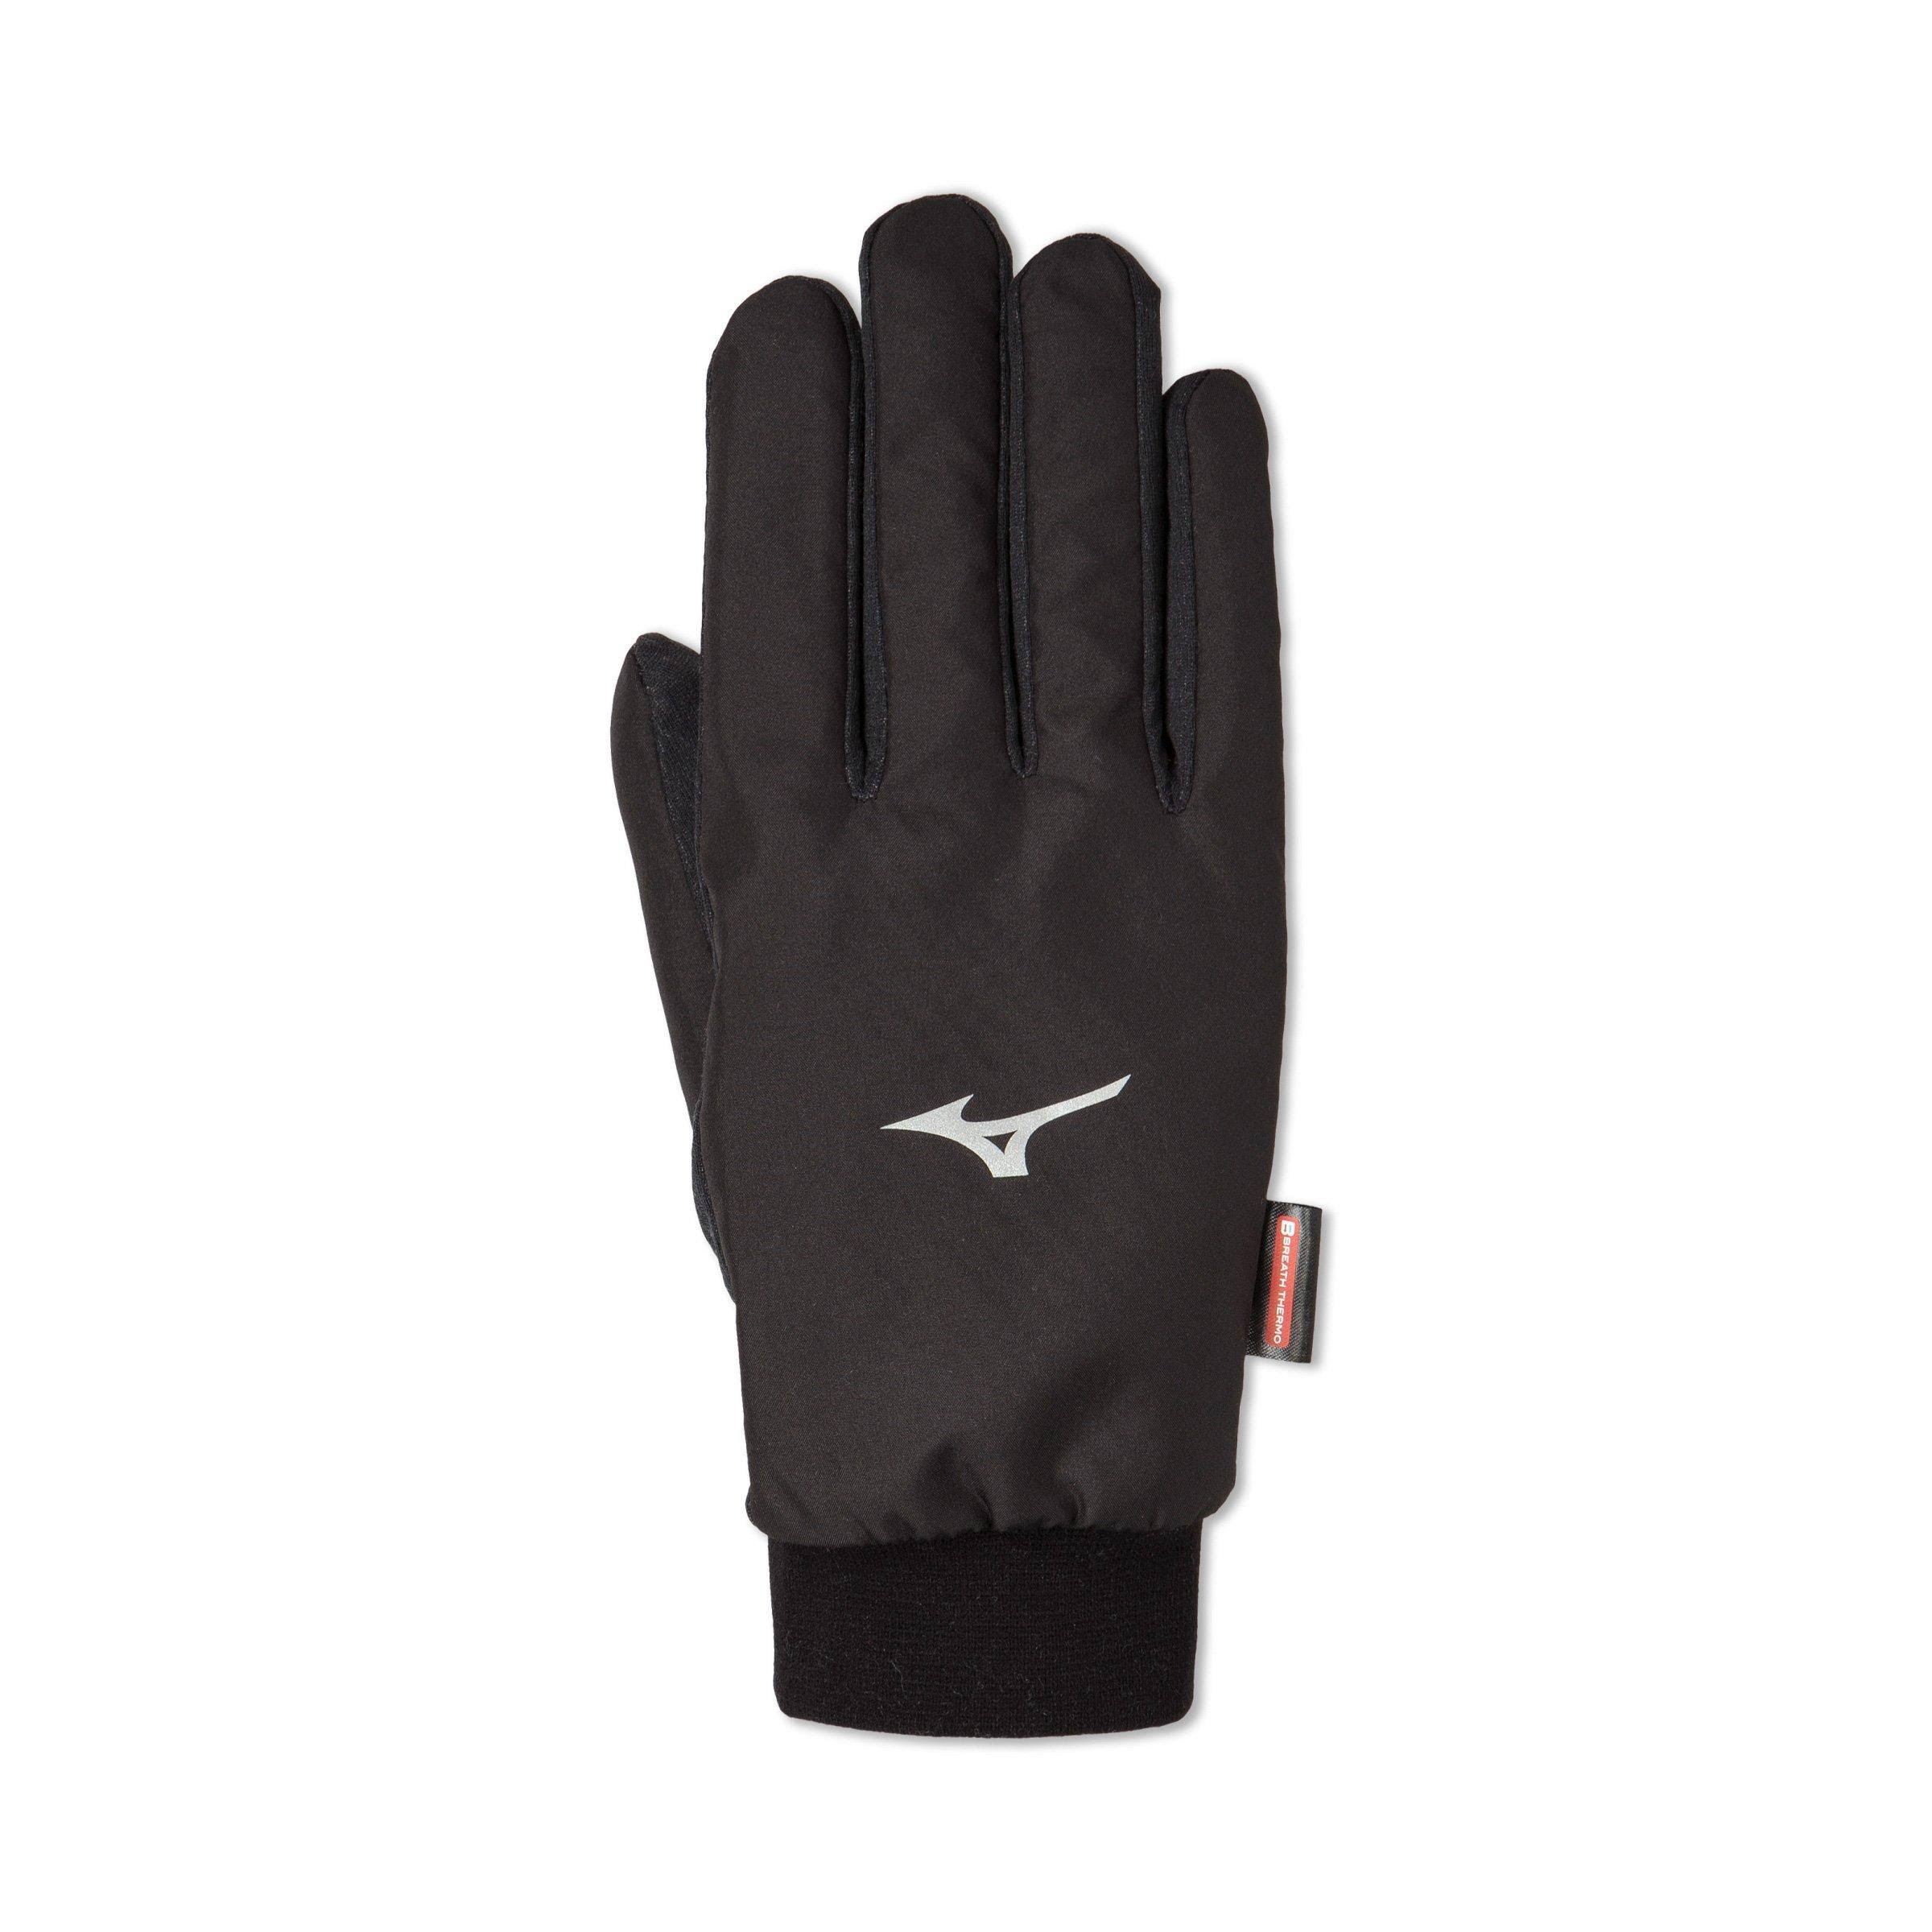 Mizuno - Breath Thermo Wind Guard Gloves, Black, Size Large